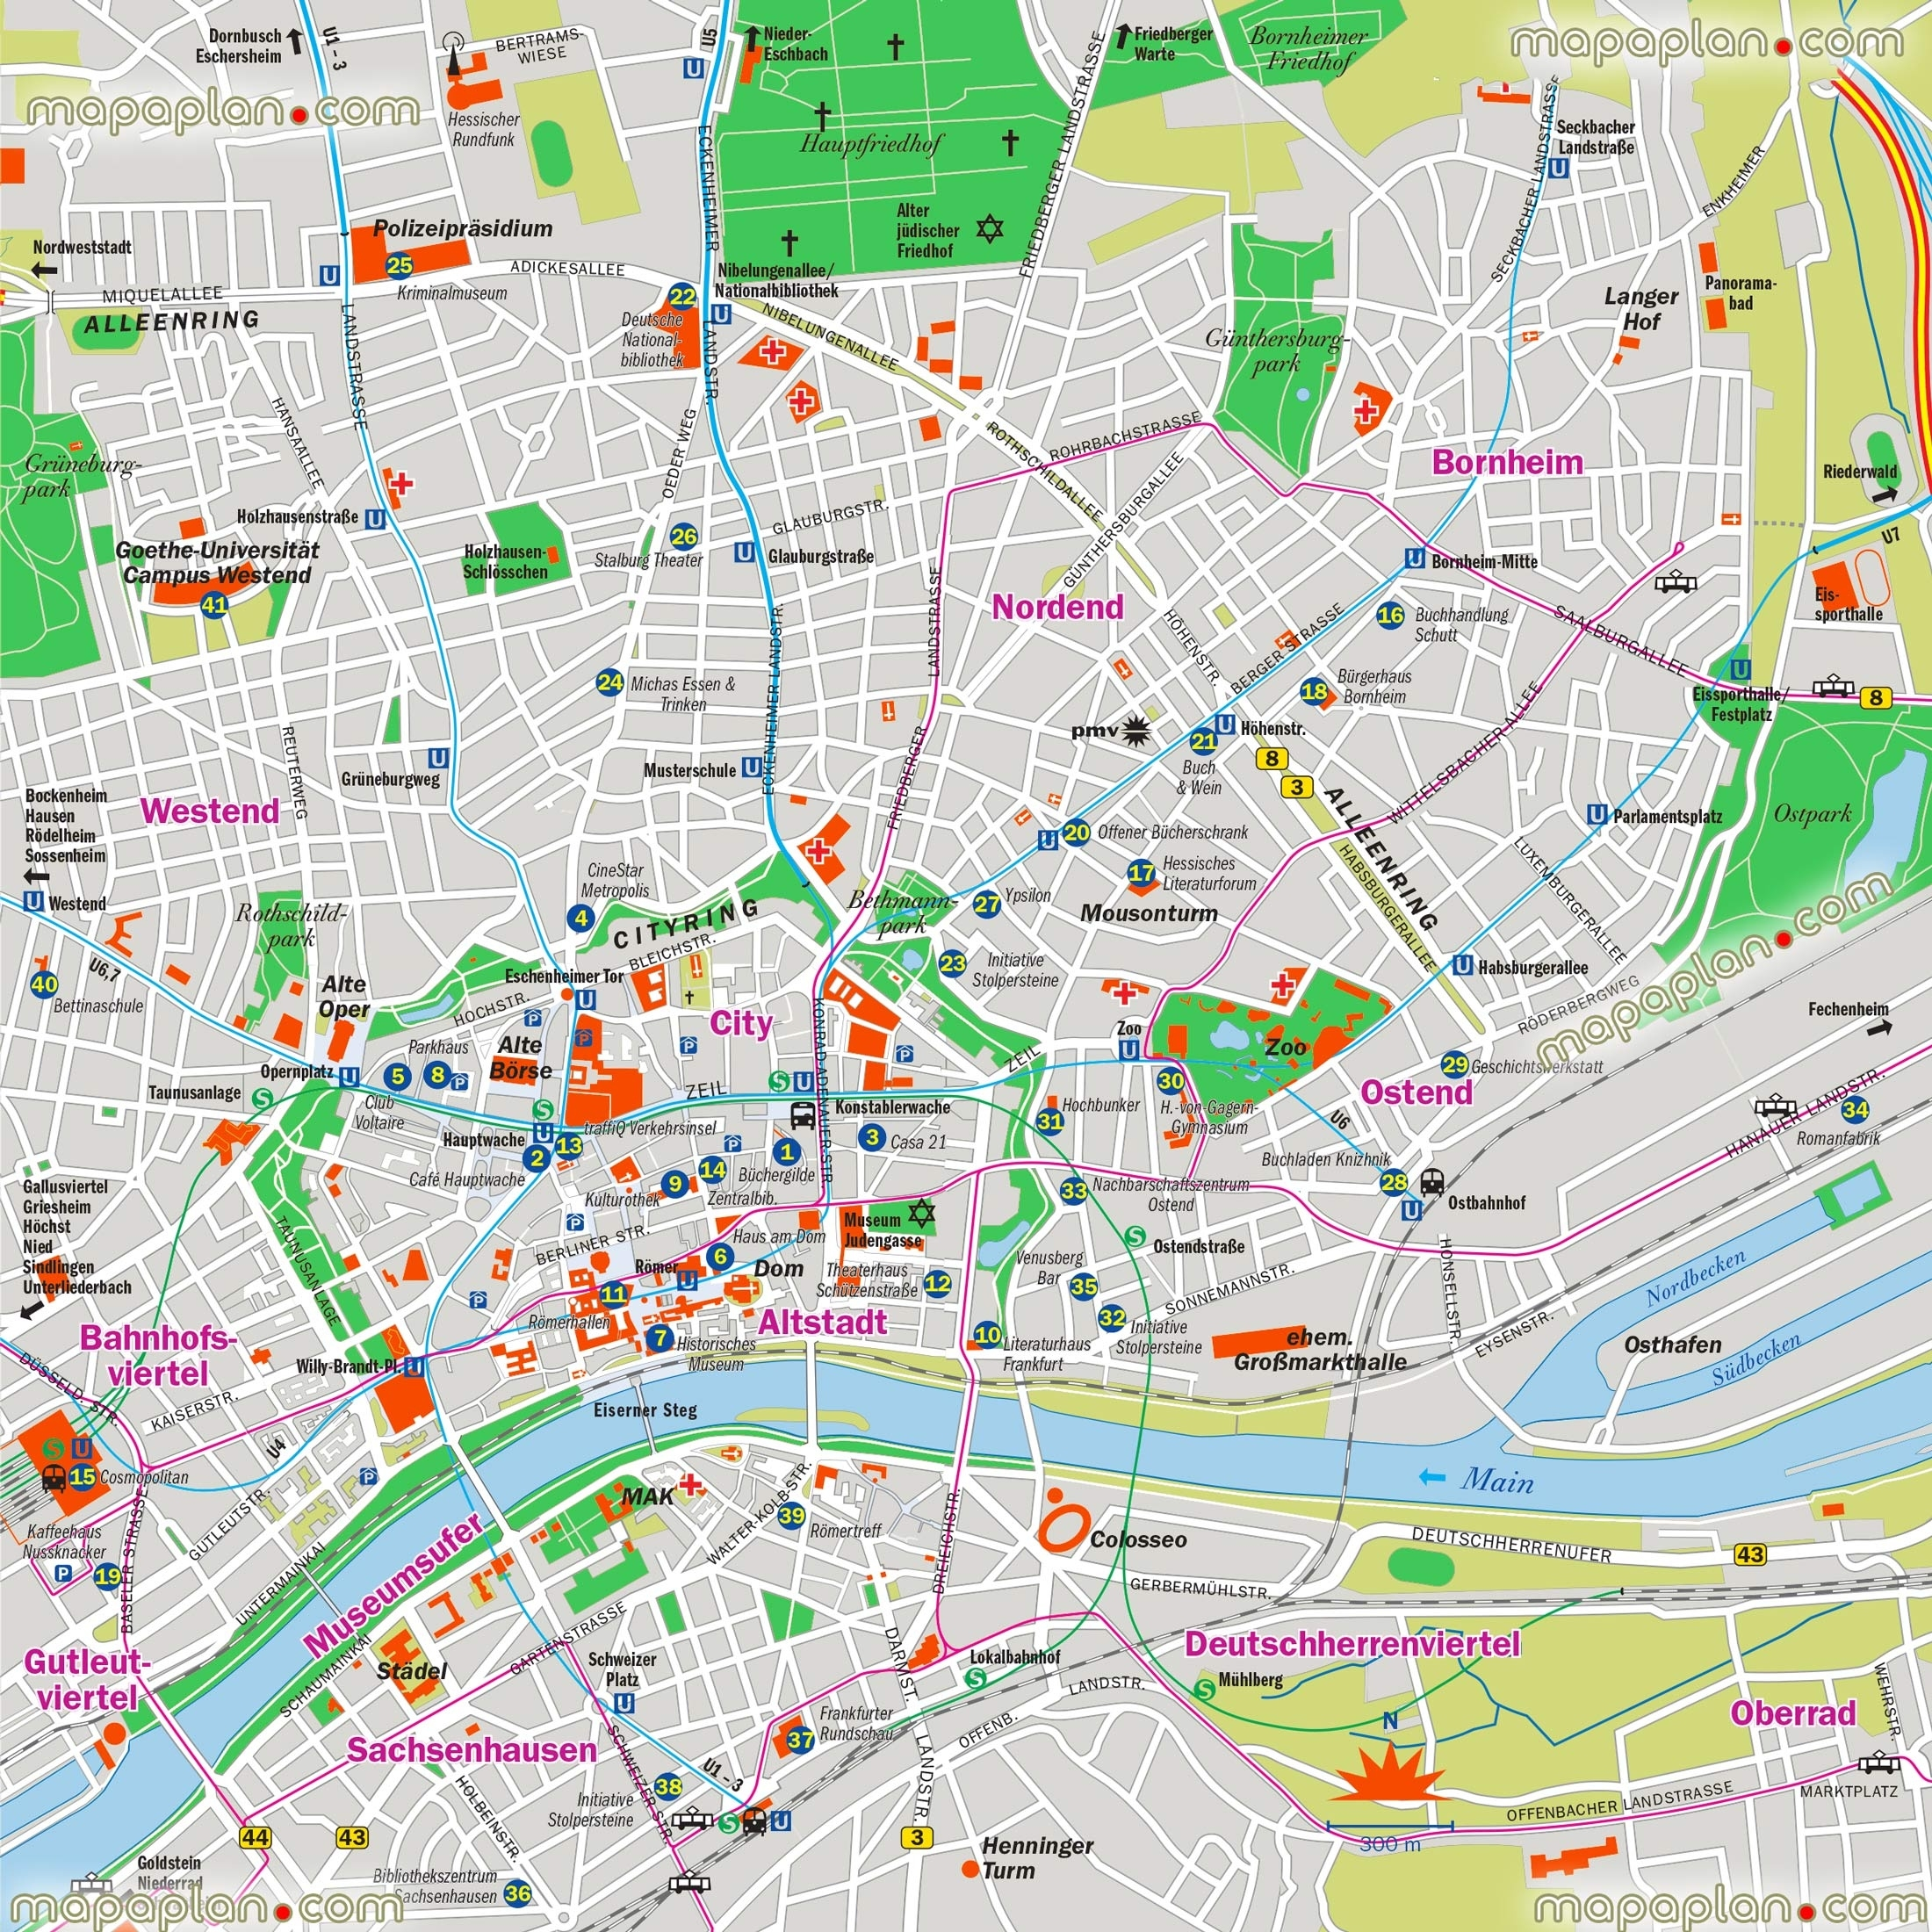 Frankfurt Map - Frankfurt Am Main, Germany City Center Free intended for Map Of Frankfurt Germany And Surrounding Area